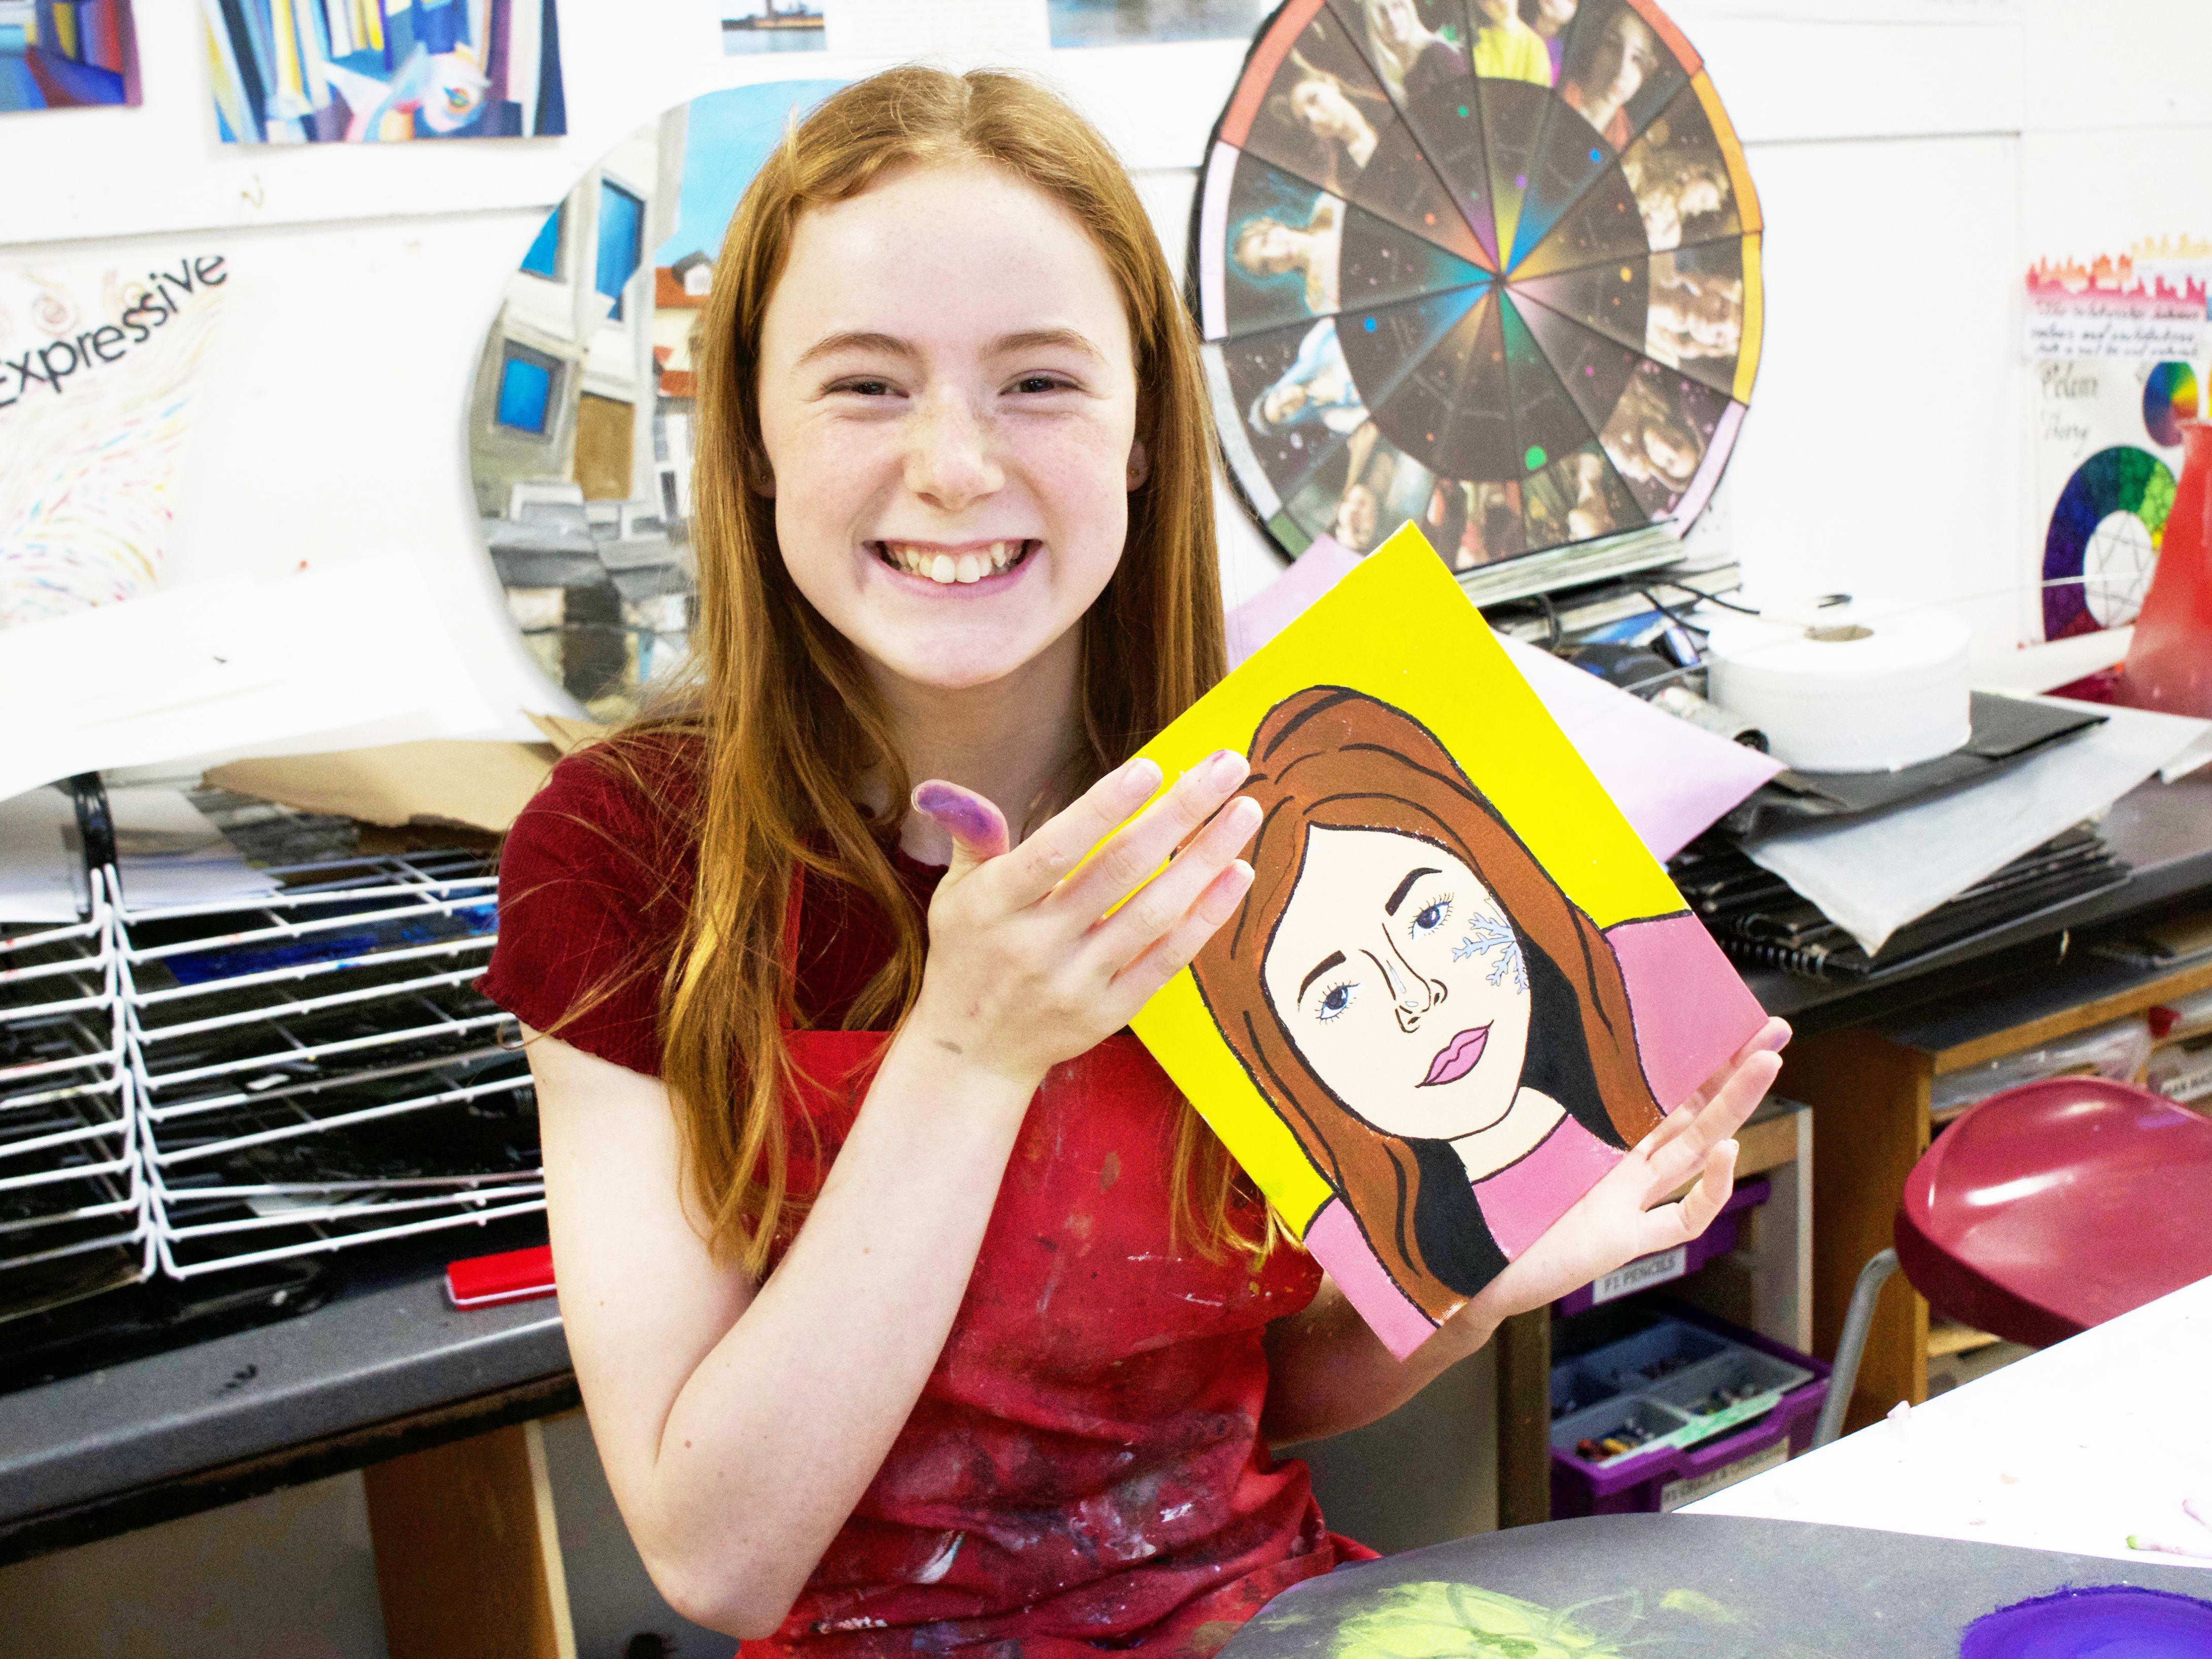 Online art classes for 11-17 year olds